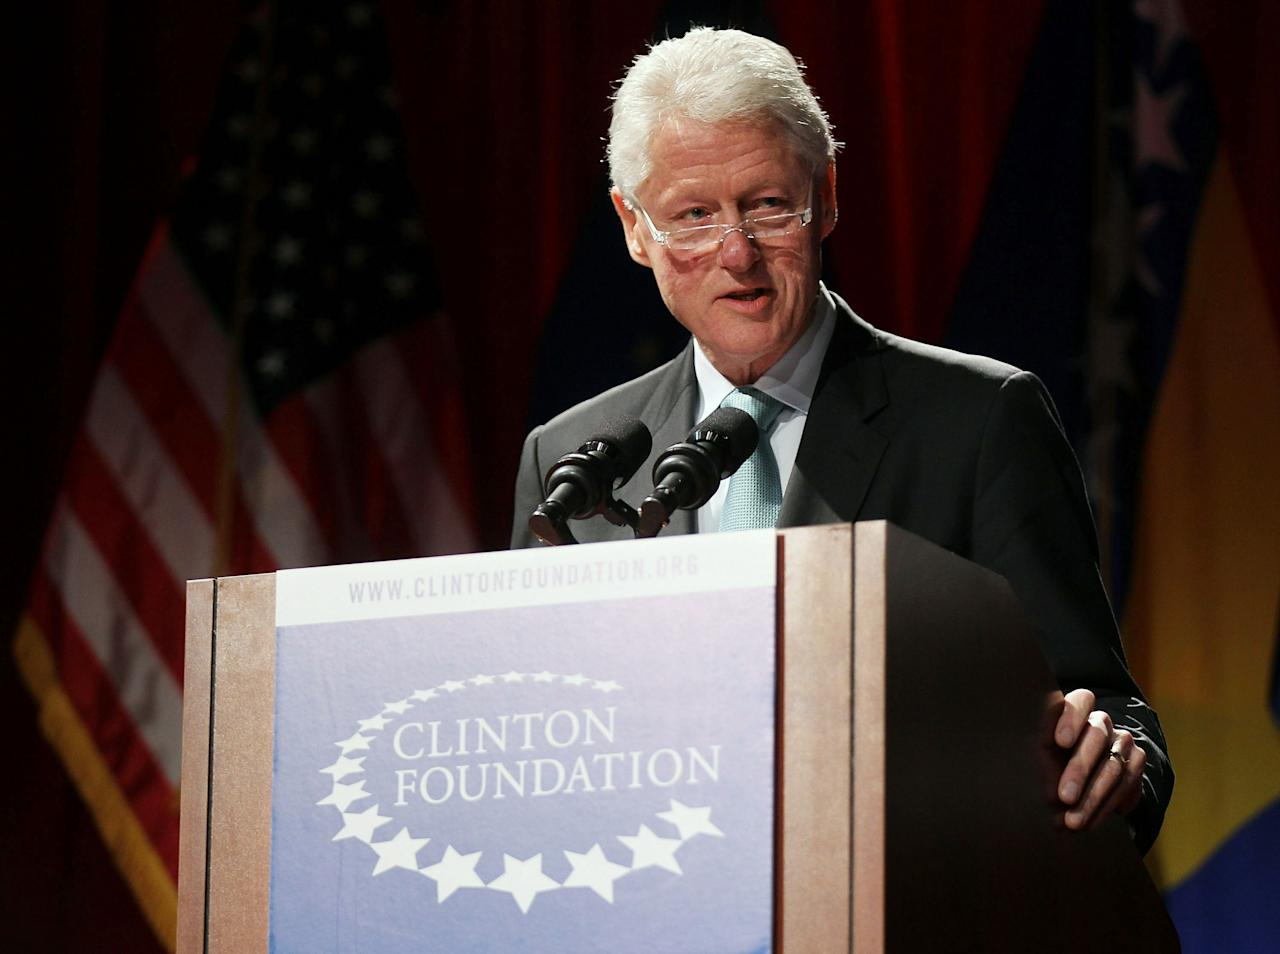 NEW YORK, NY - FEBRUARY 09:  Former U.S. President Bill Clinton speaks at a panel hosted by the Clinton Foundation to recognize the 15 year anniversary of the Dayton accords February 9, 2011 in New York City. Hosted by President Clinton, the afternoon panel discussed the making of the accords and the ramifications they had on current history. The Dayton accords brought to an end the war in Bosnia and Herzegovina which claimed an estimated 100,000 lives.  (Photo by Spencer Platt/Getty Images)